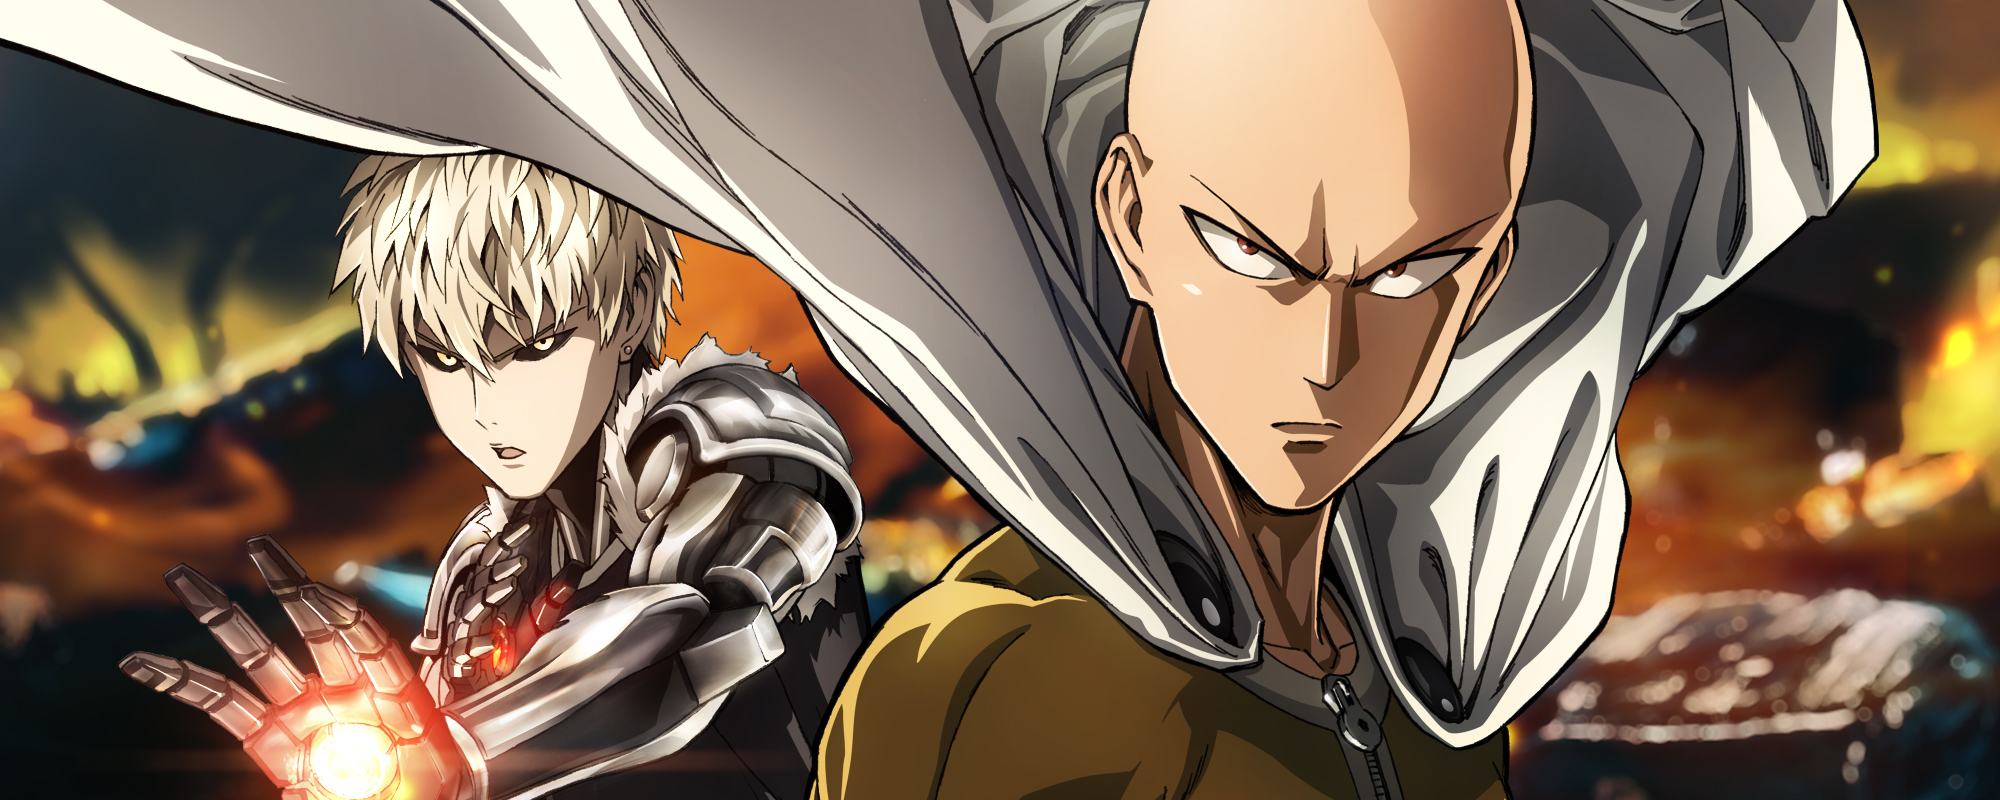 Viz Watch One Punch Man Anime